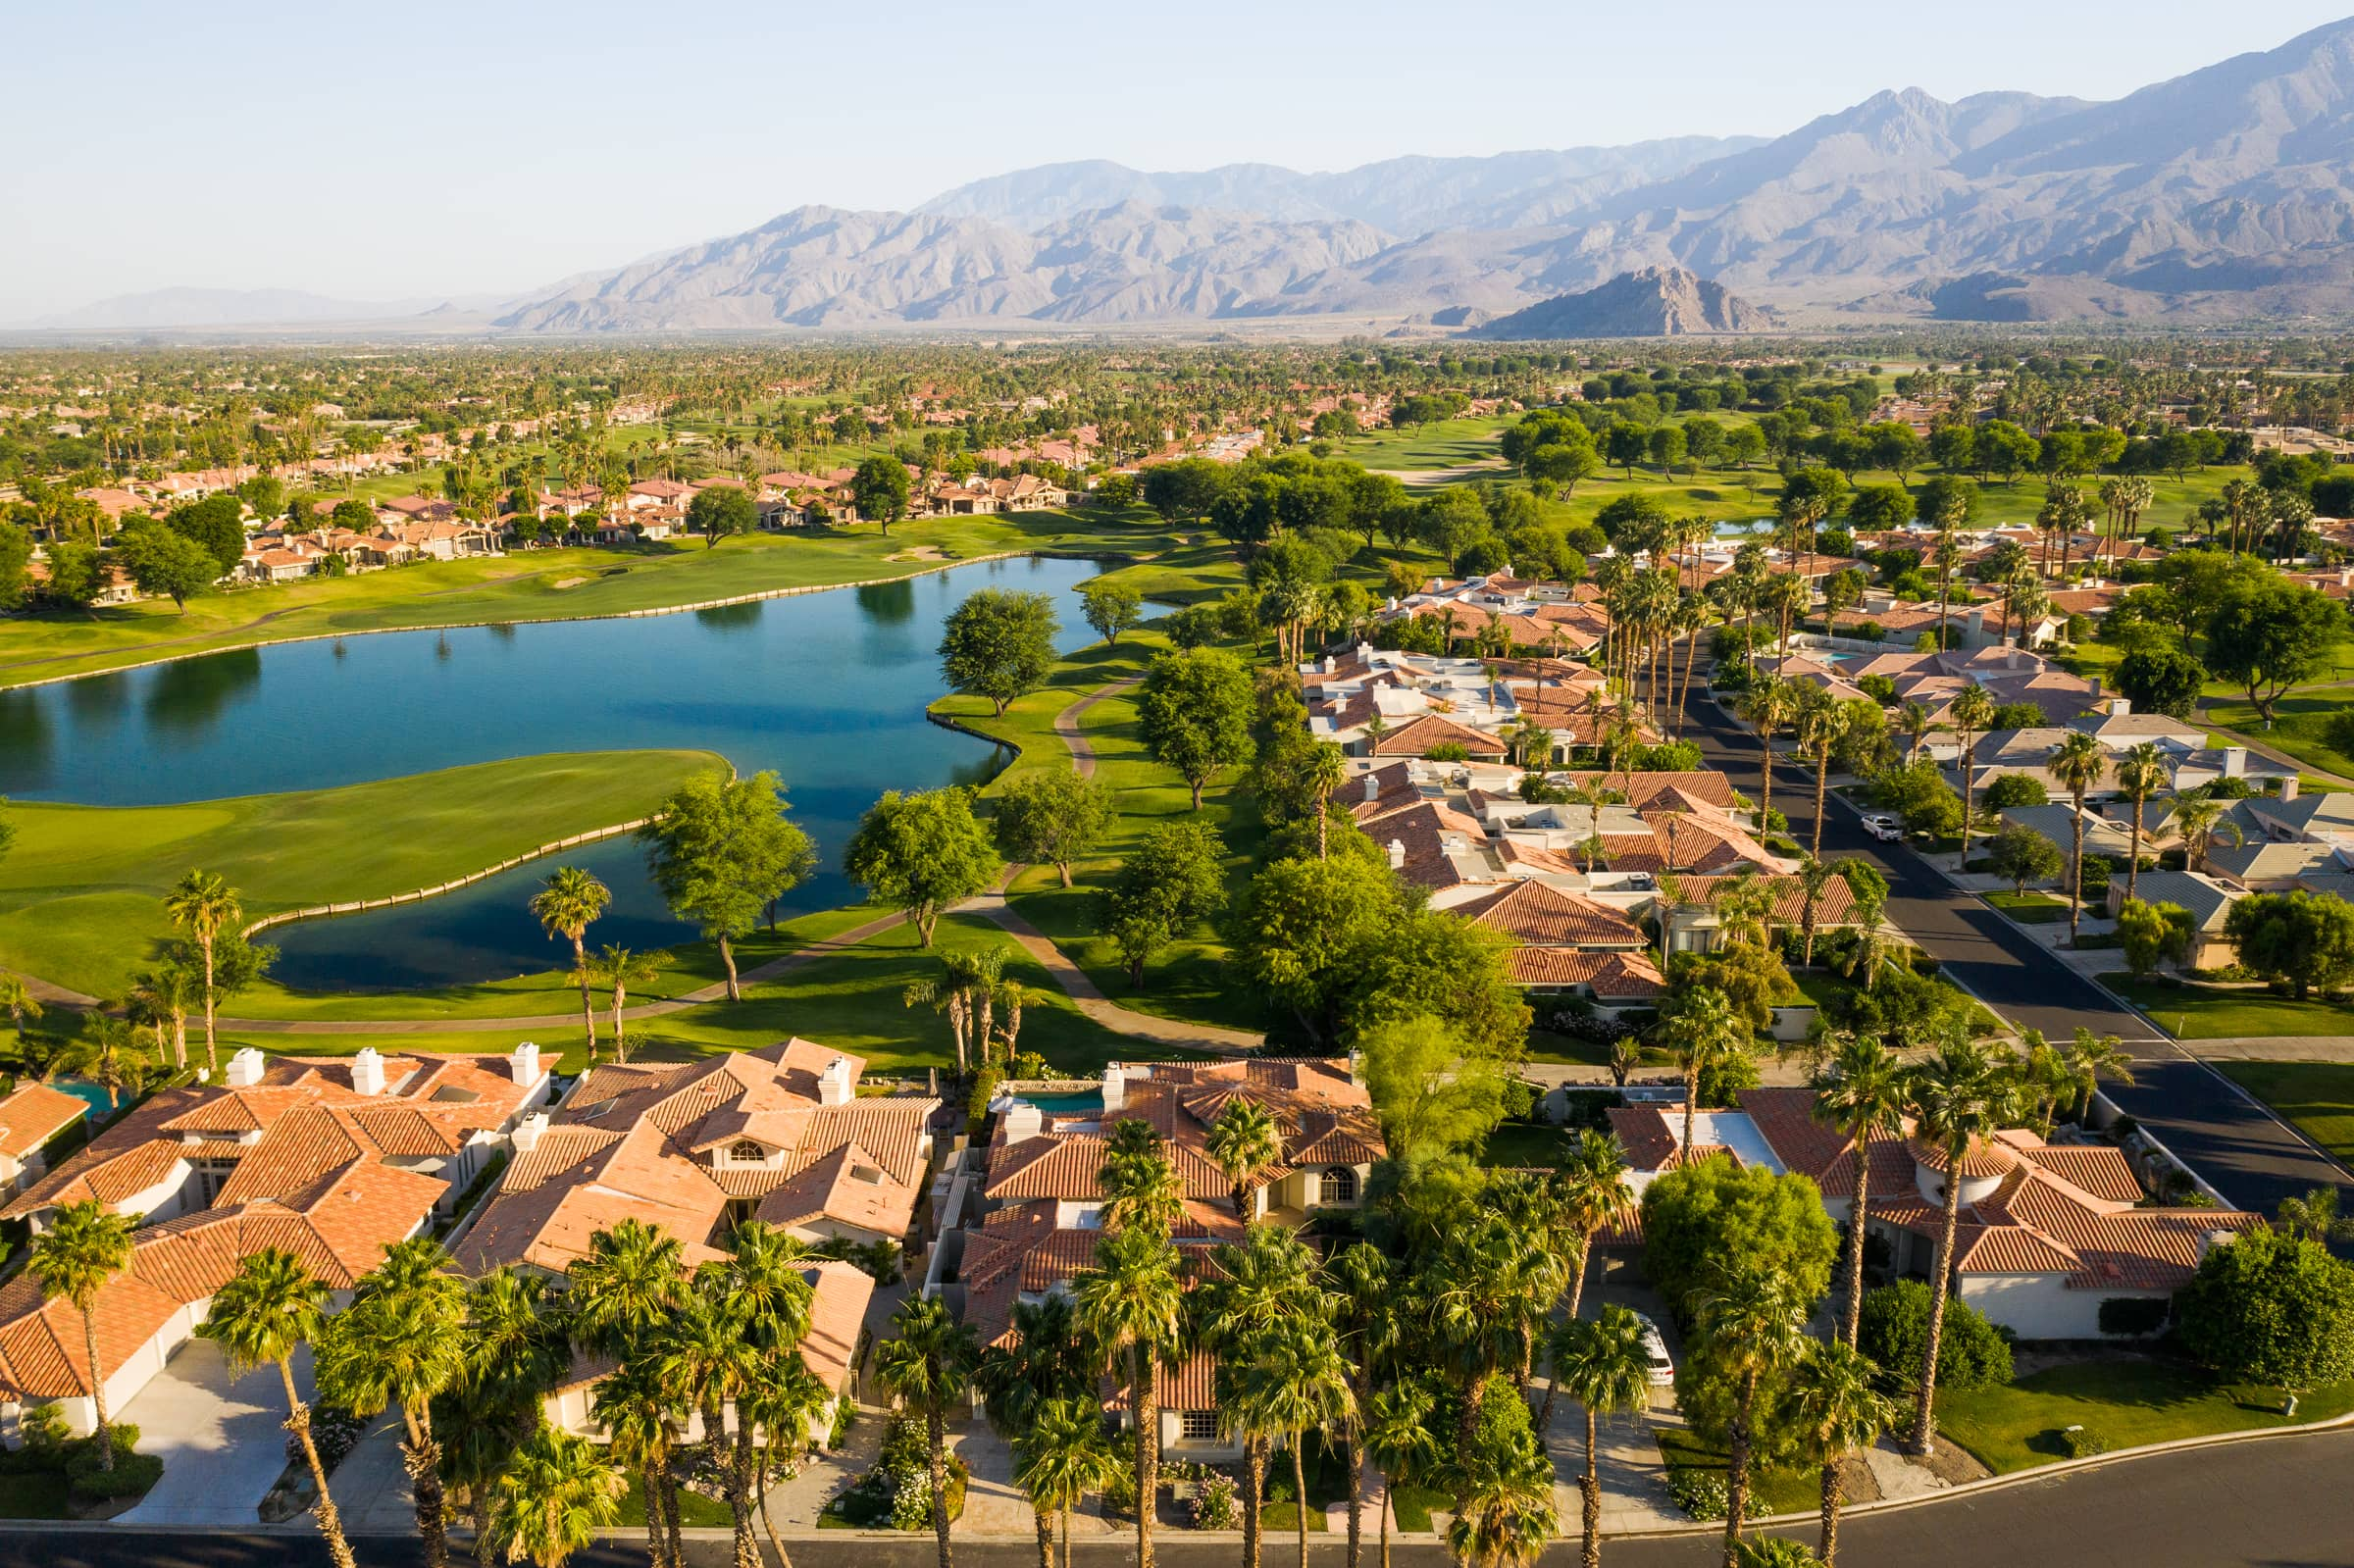 35 Things to do in Palm Springs for Some Fun in the Sun